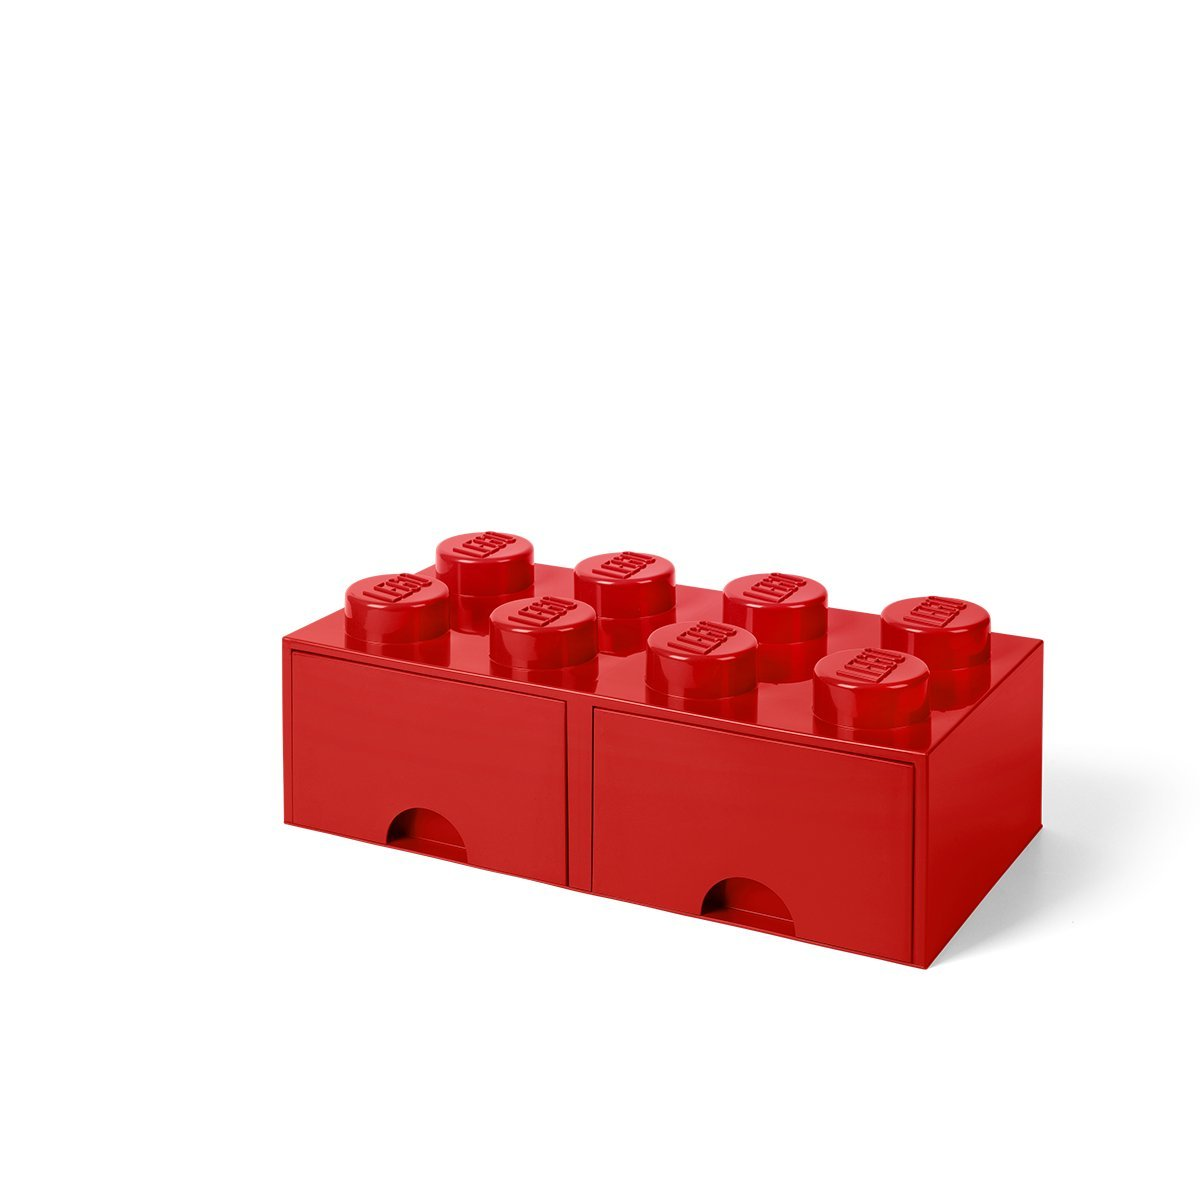 LEGO Brick Drawer, 8 Knobs, 2 Drawers, Stackable Storage Box, Bright Red